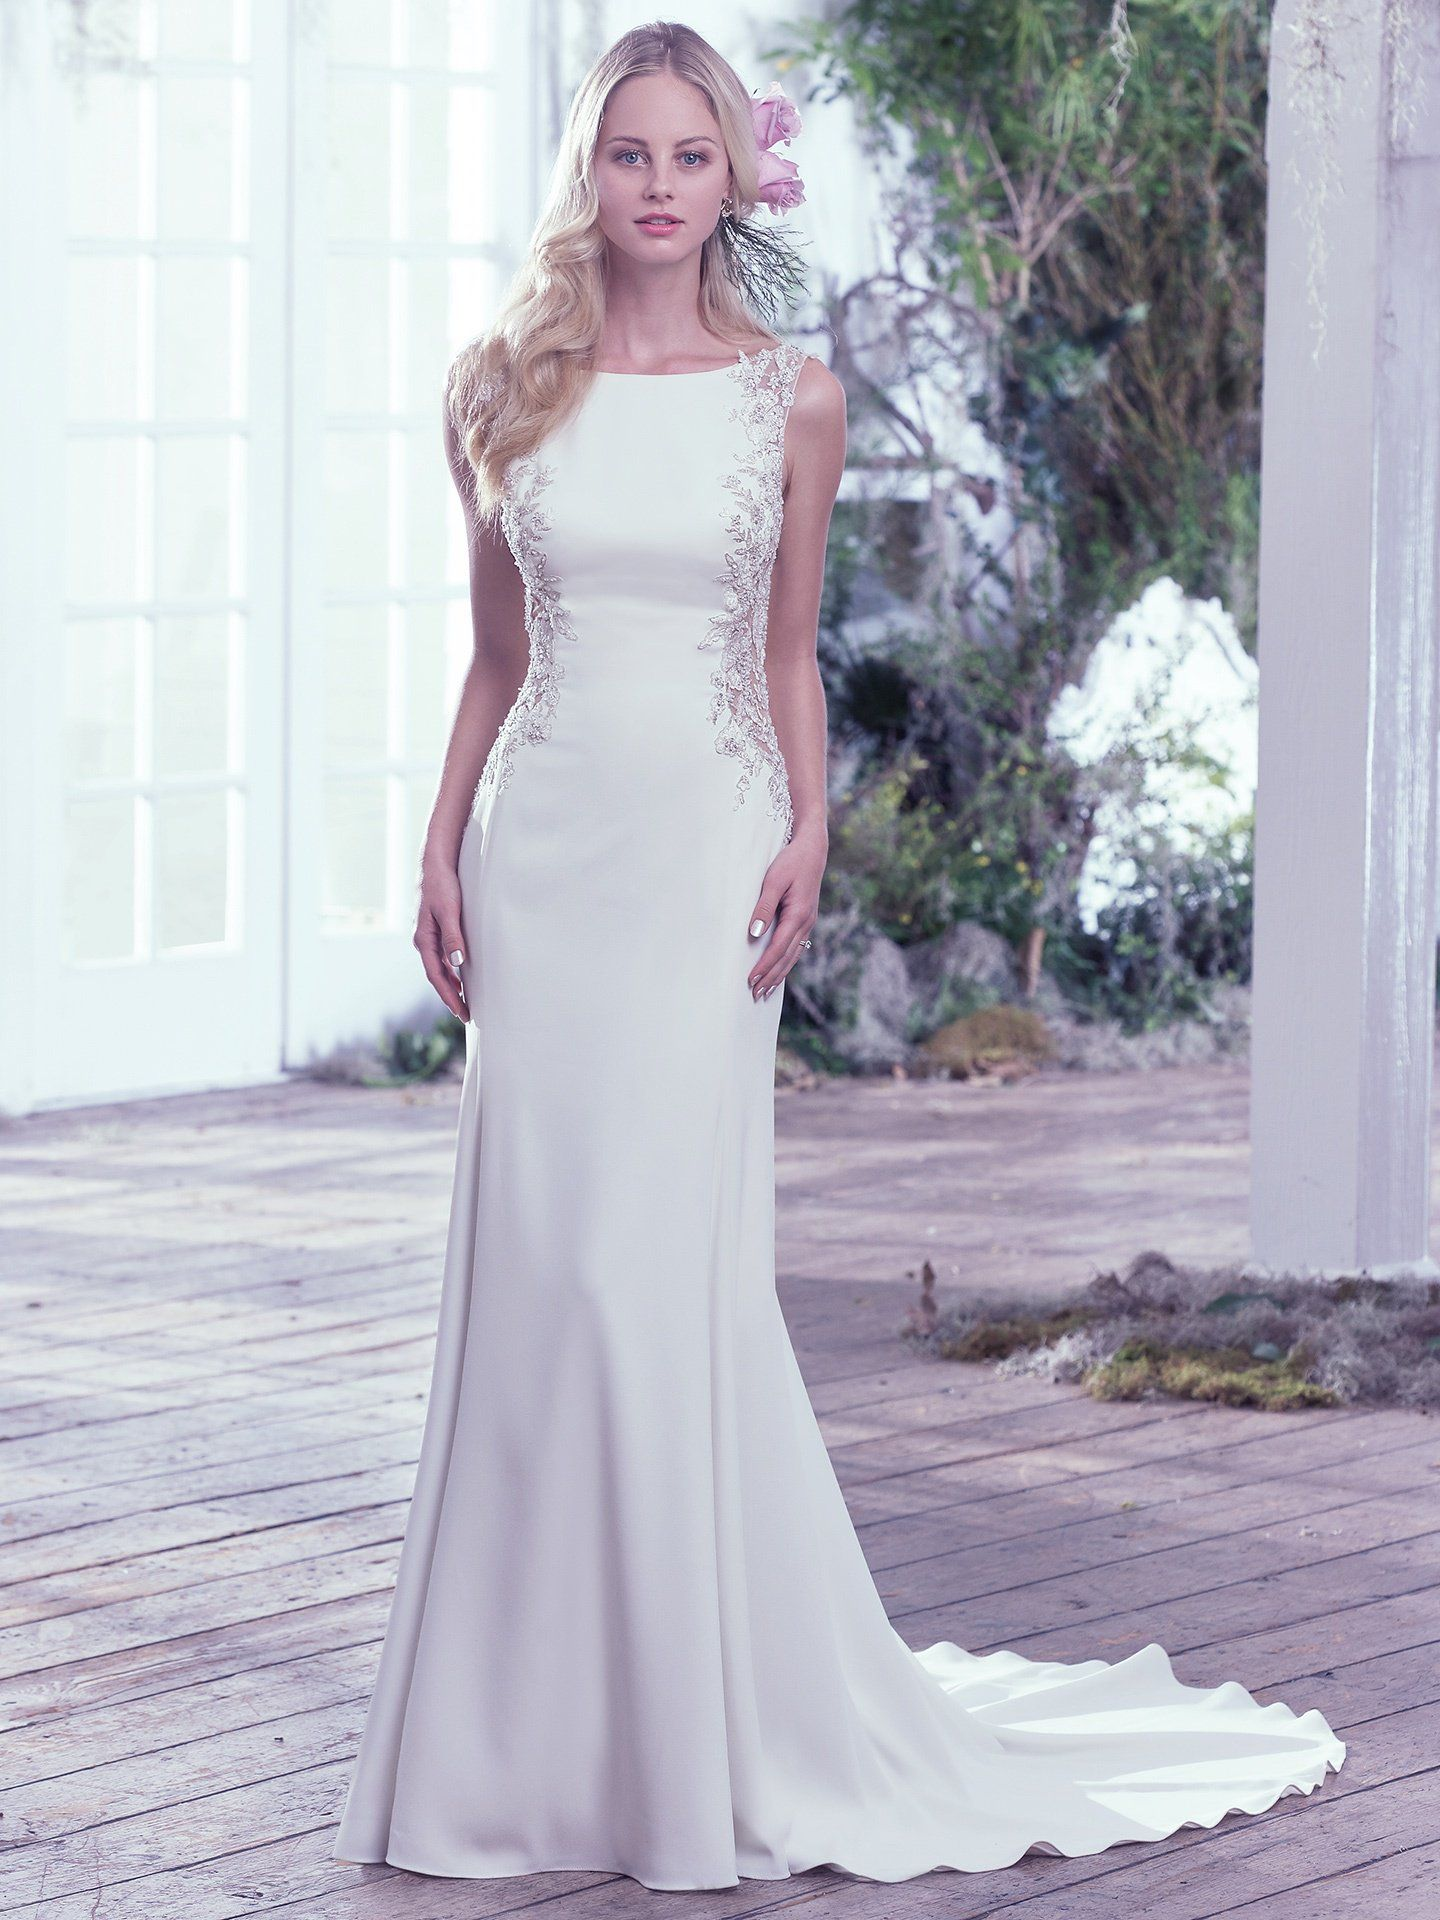 2843e21c61 A dramatic scoop back is accented with an illusion closure creating a sexy  keyhole below the natural waist. Artfully placed lace embellishments  featuring ...